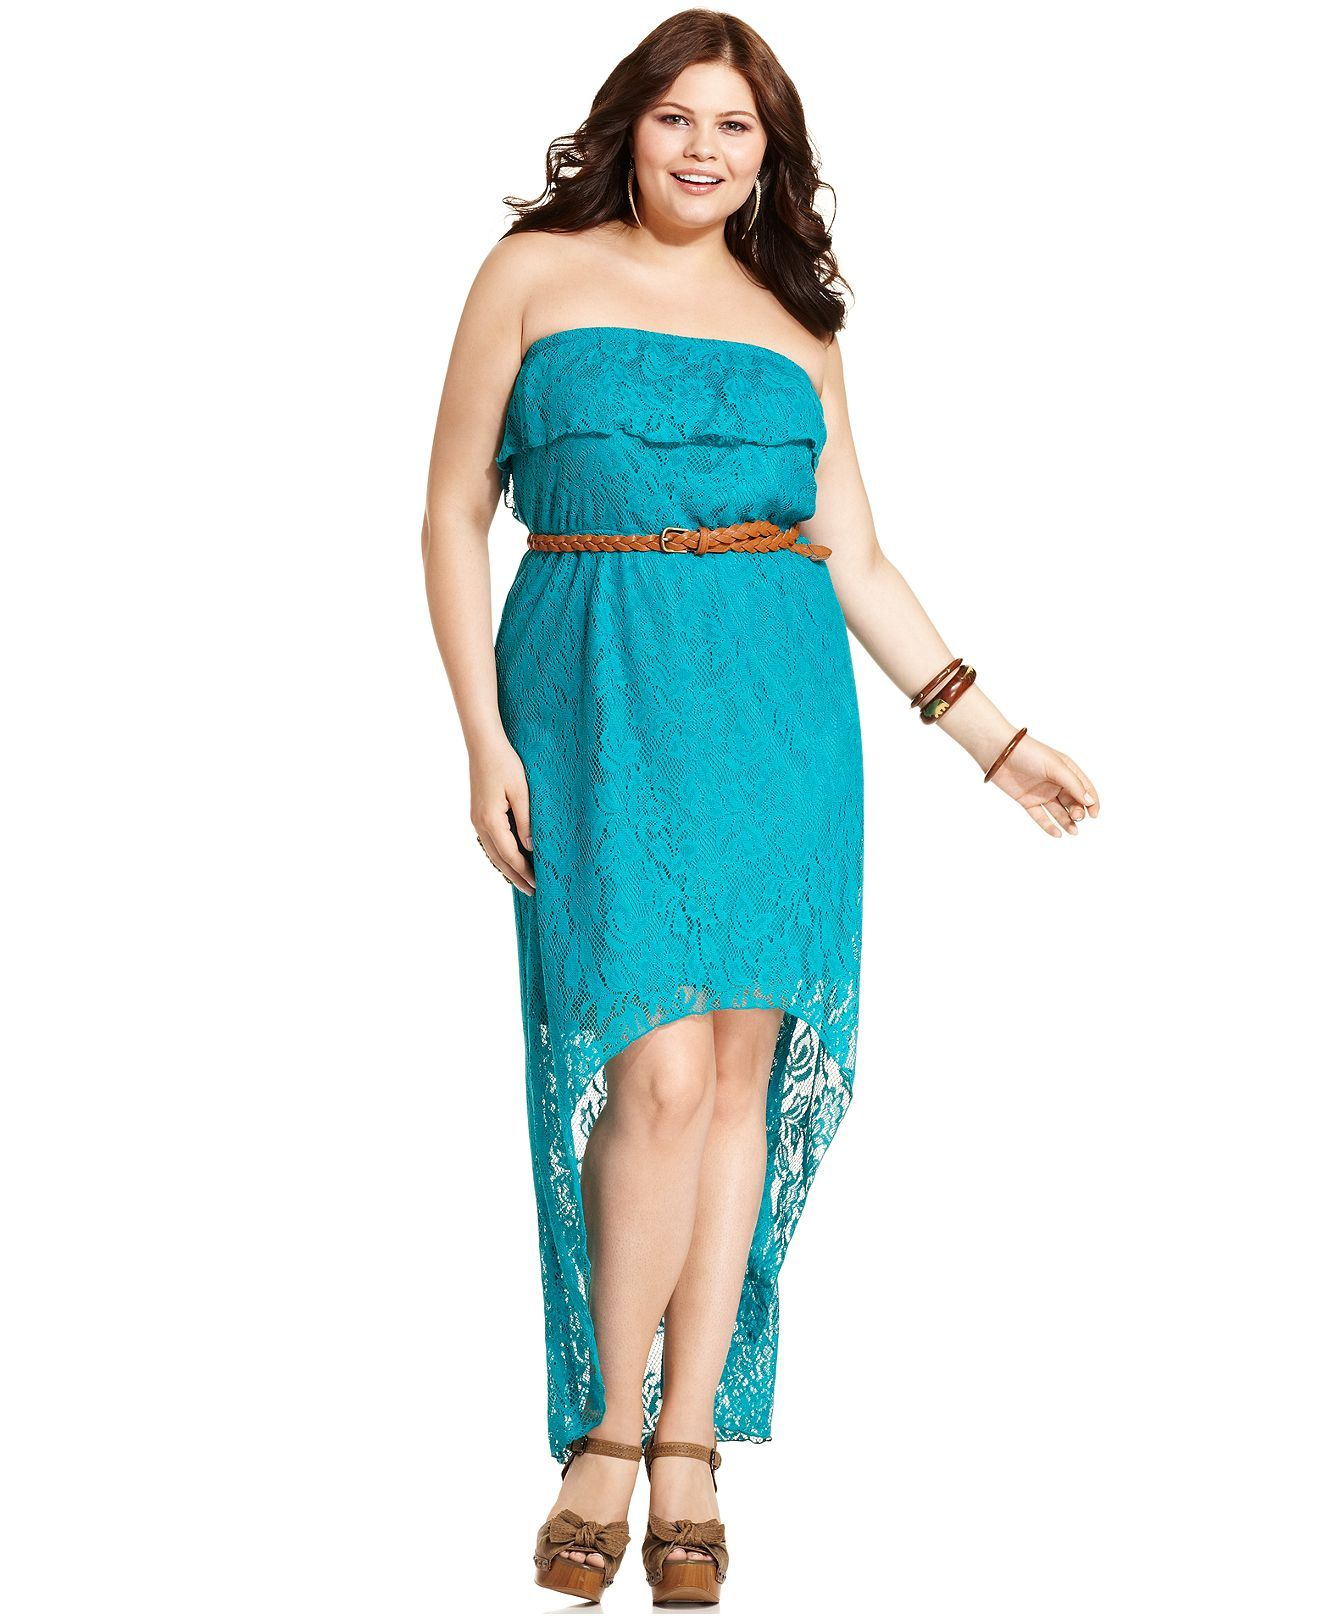 Trixxi Plus Size Dress, Strapless Lace Belted High-Low - Plus Size ...